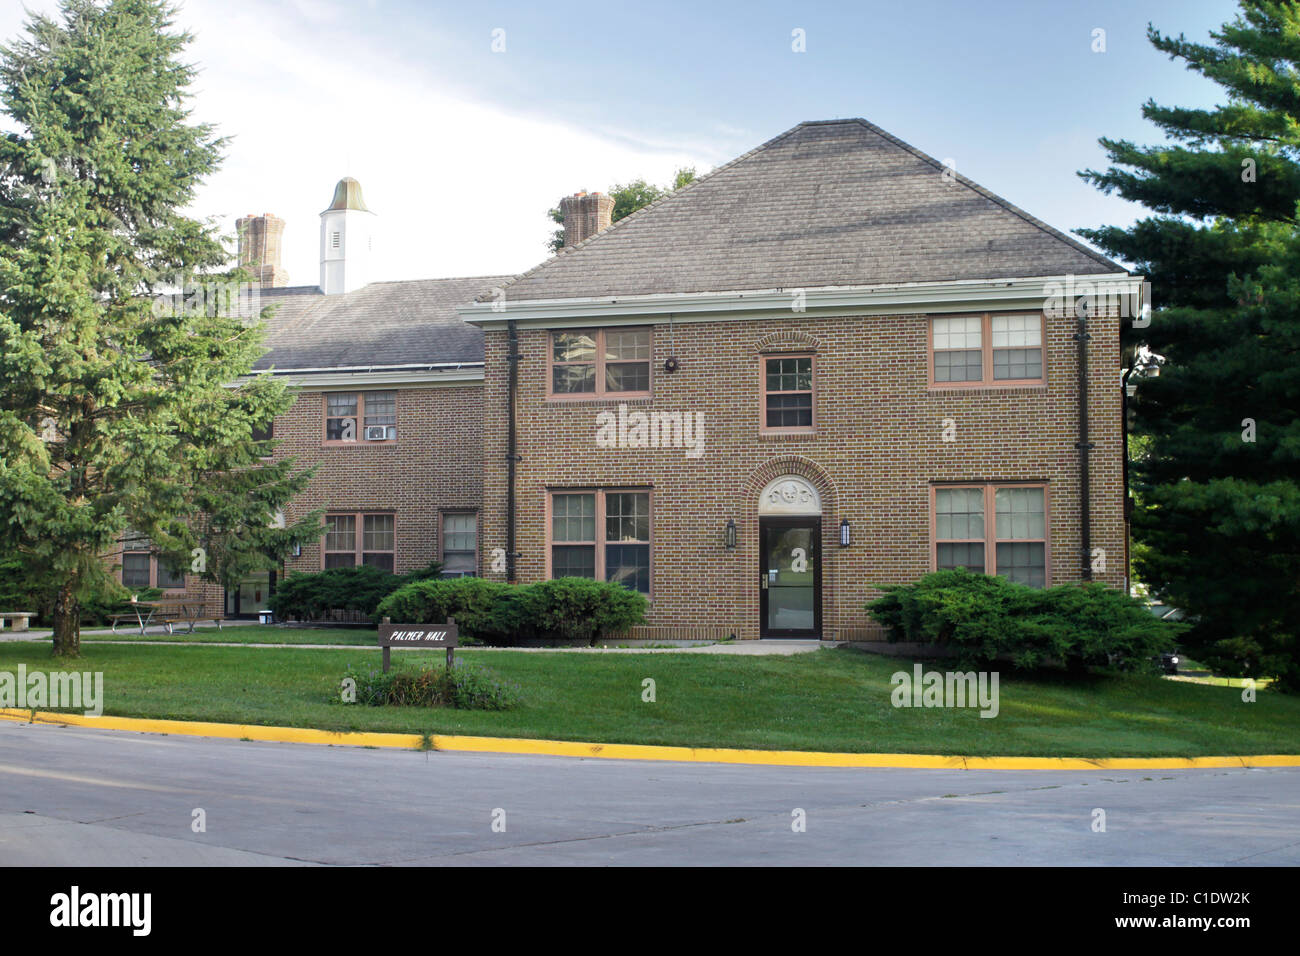 Building at Iowa Braille and Sight Saving School located in Vinton, Iowa - Stock Image